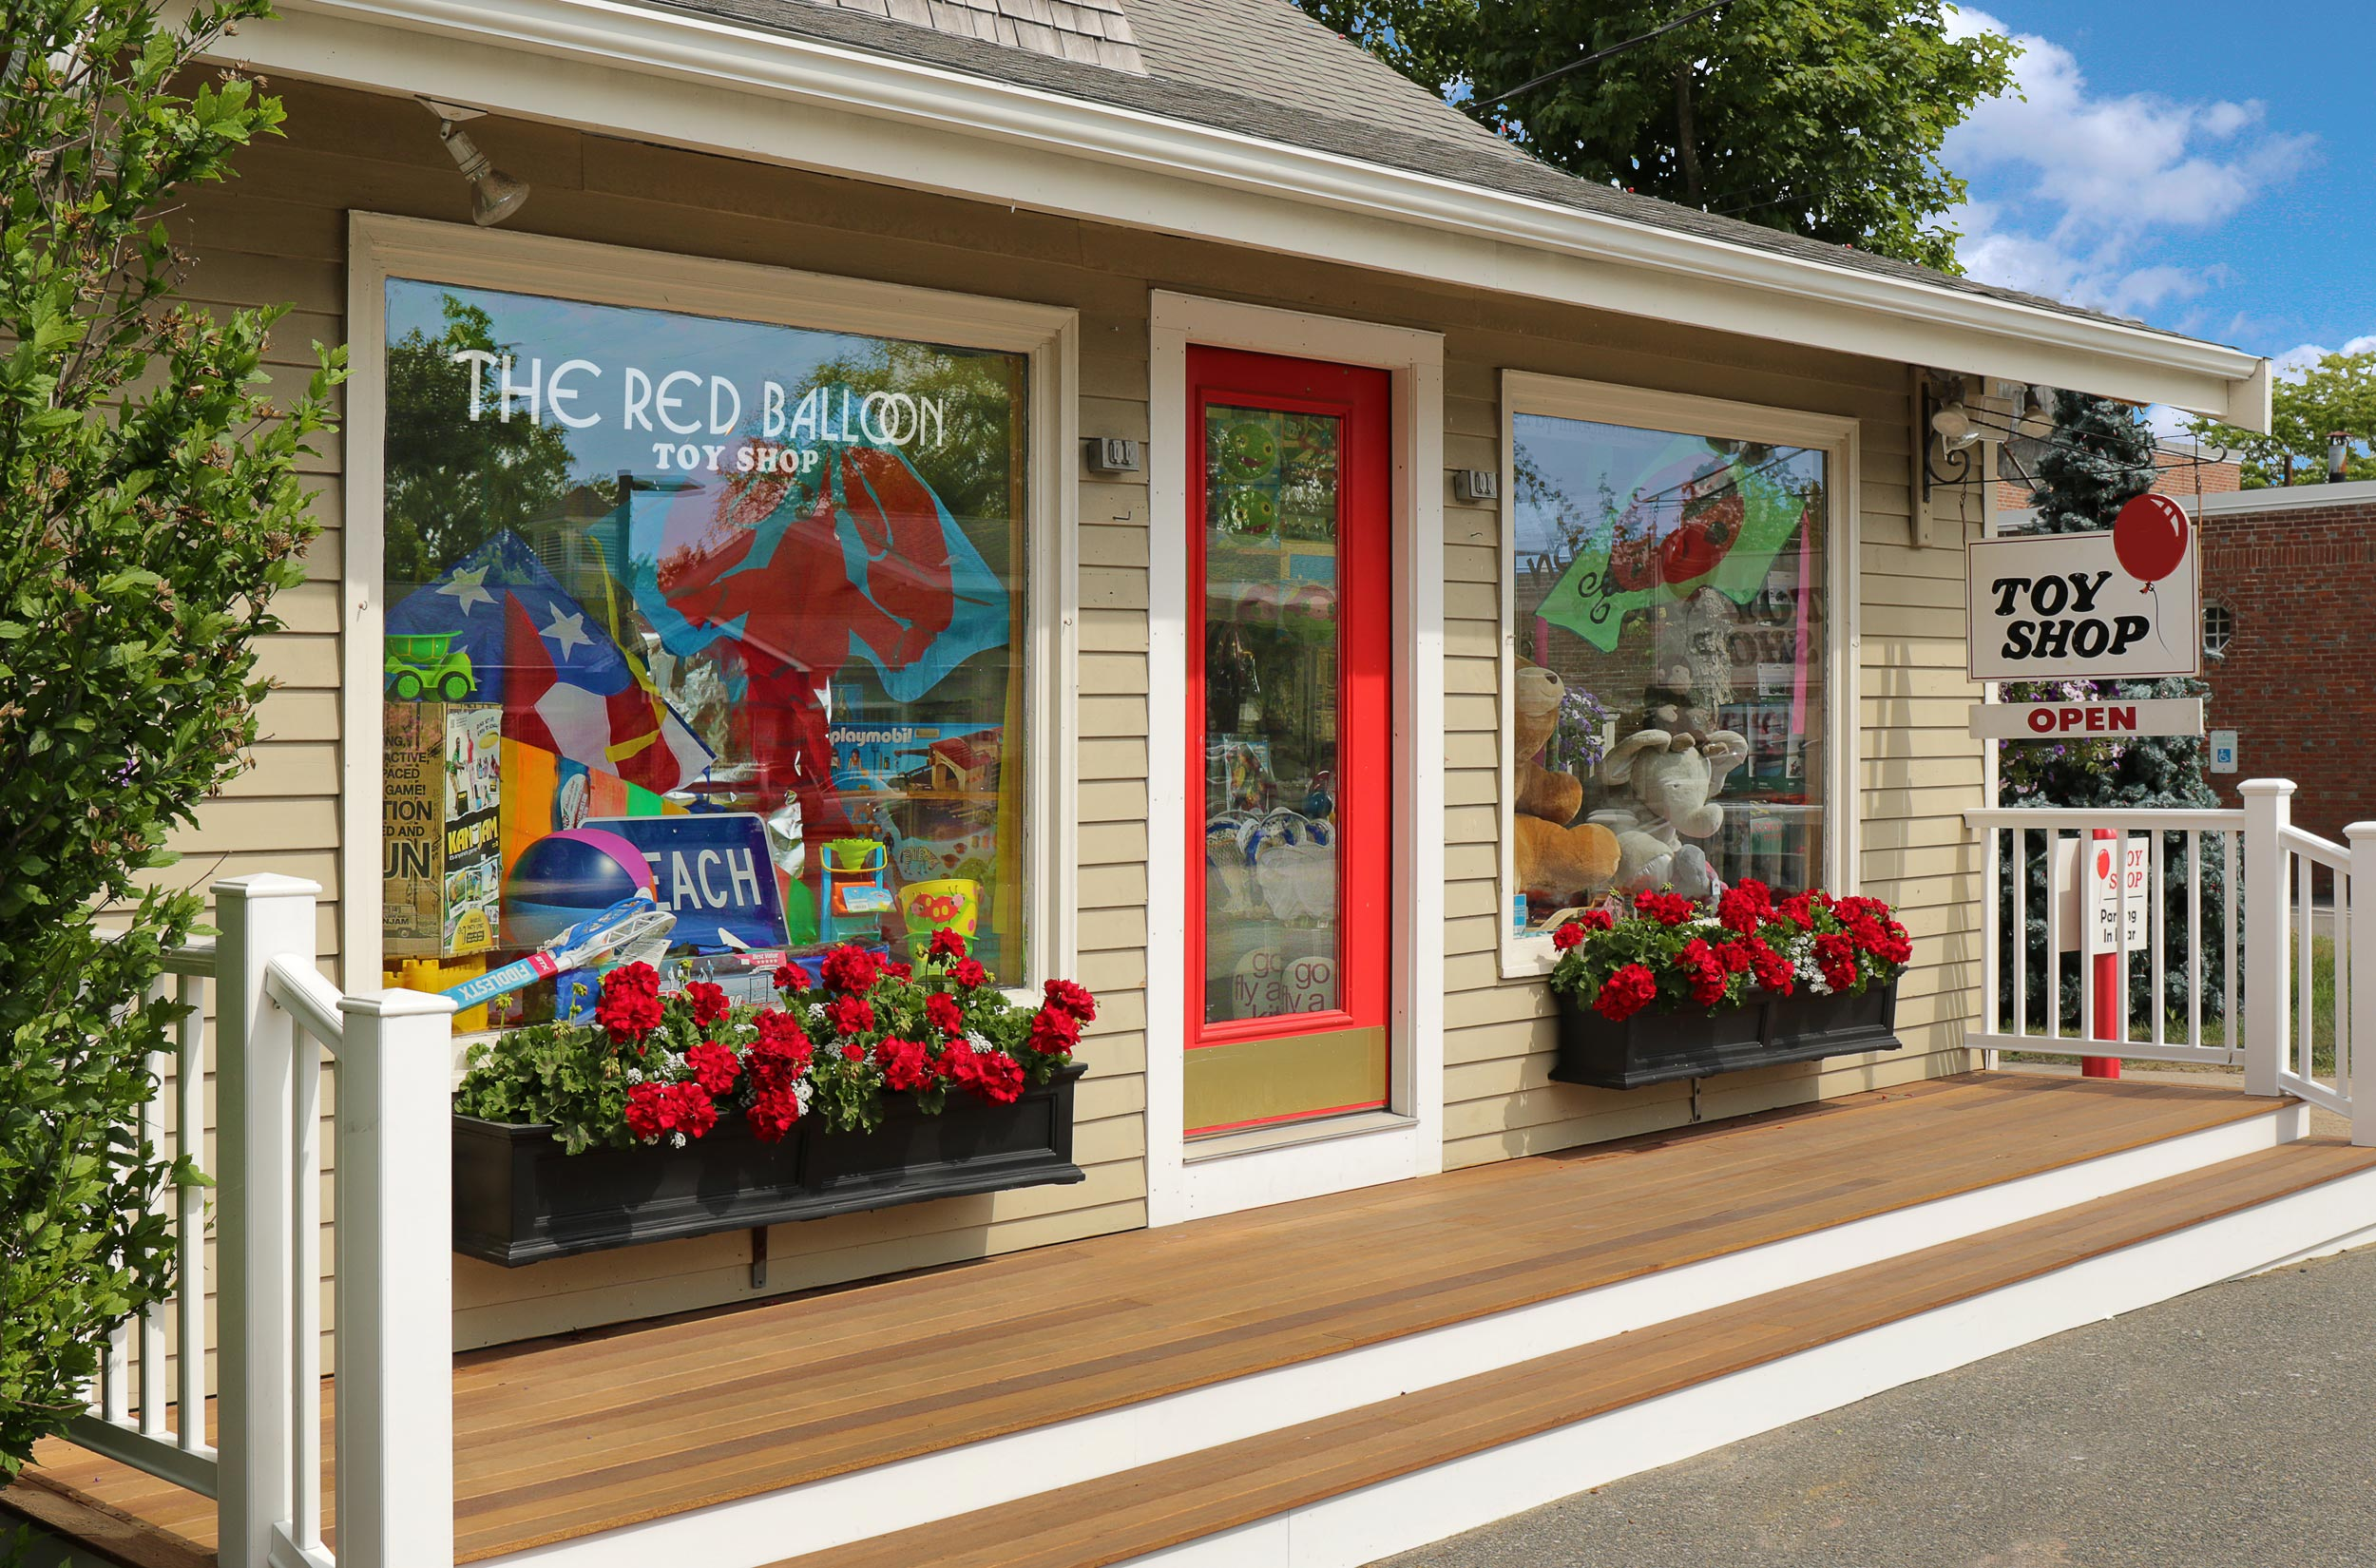 The-Red-Balloon-Toy-Shop-Orleans-Cape-Cod.jpg